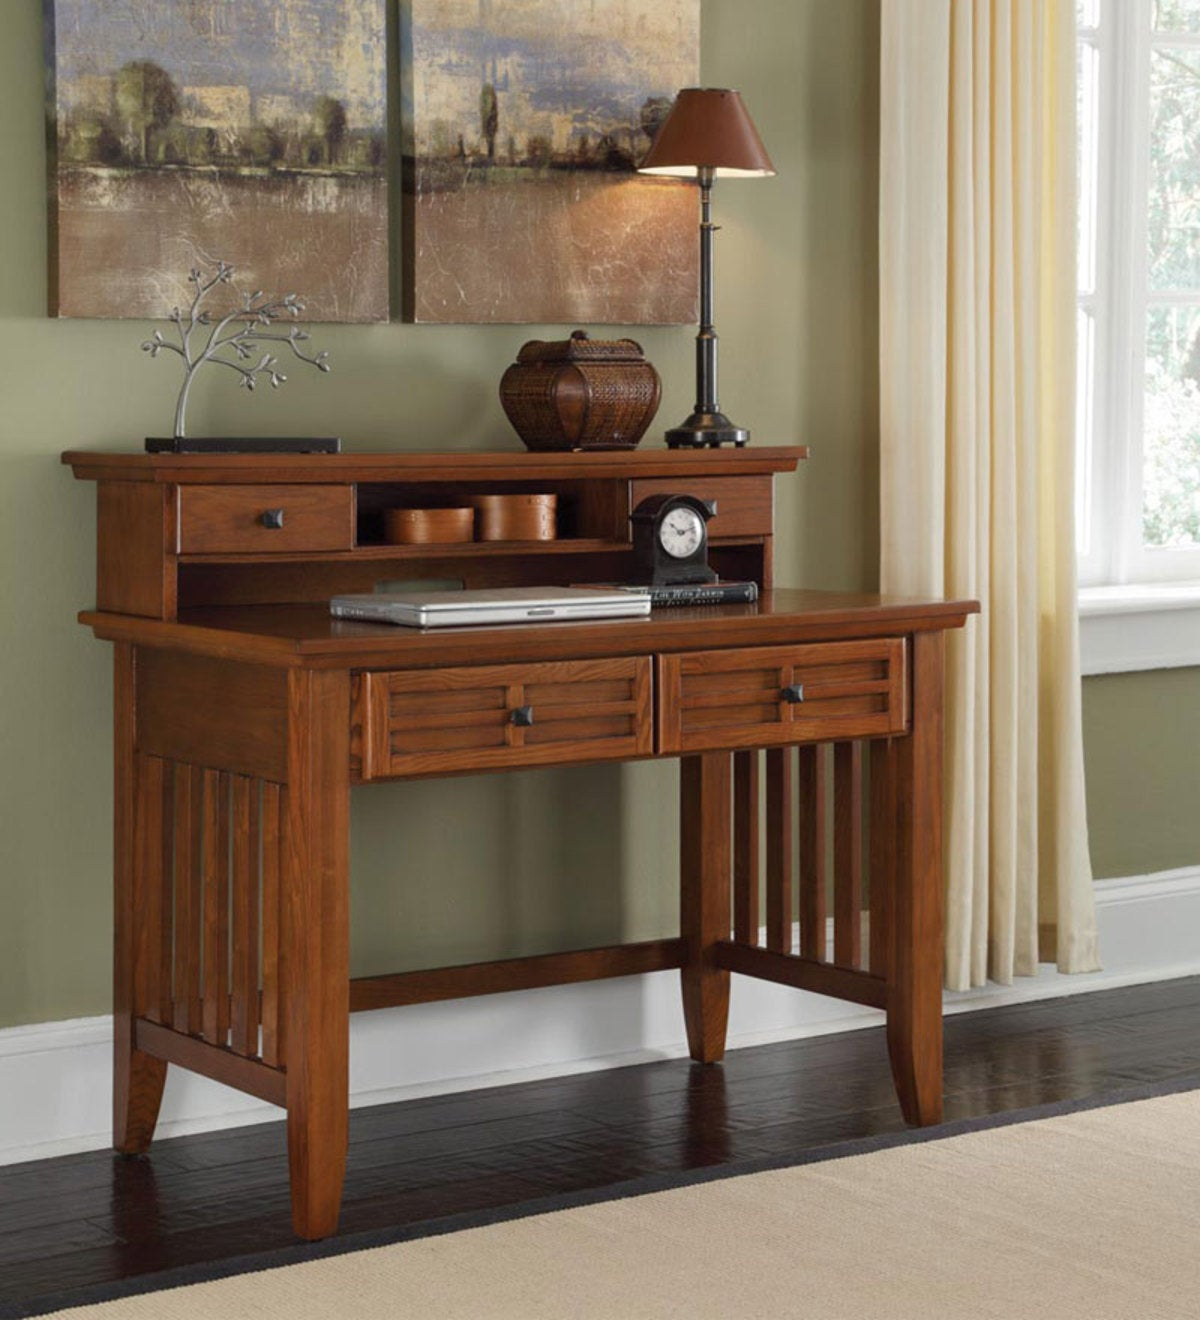 Mission Style Arts And Crafts Home Office Desk Hutch